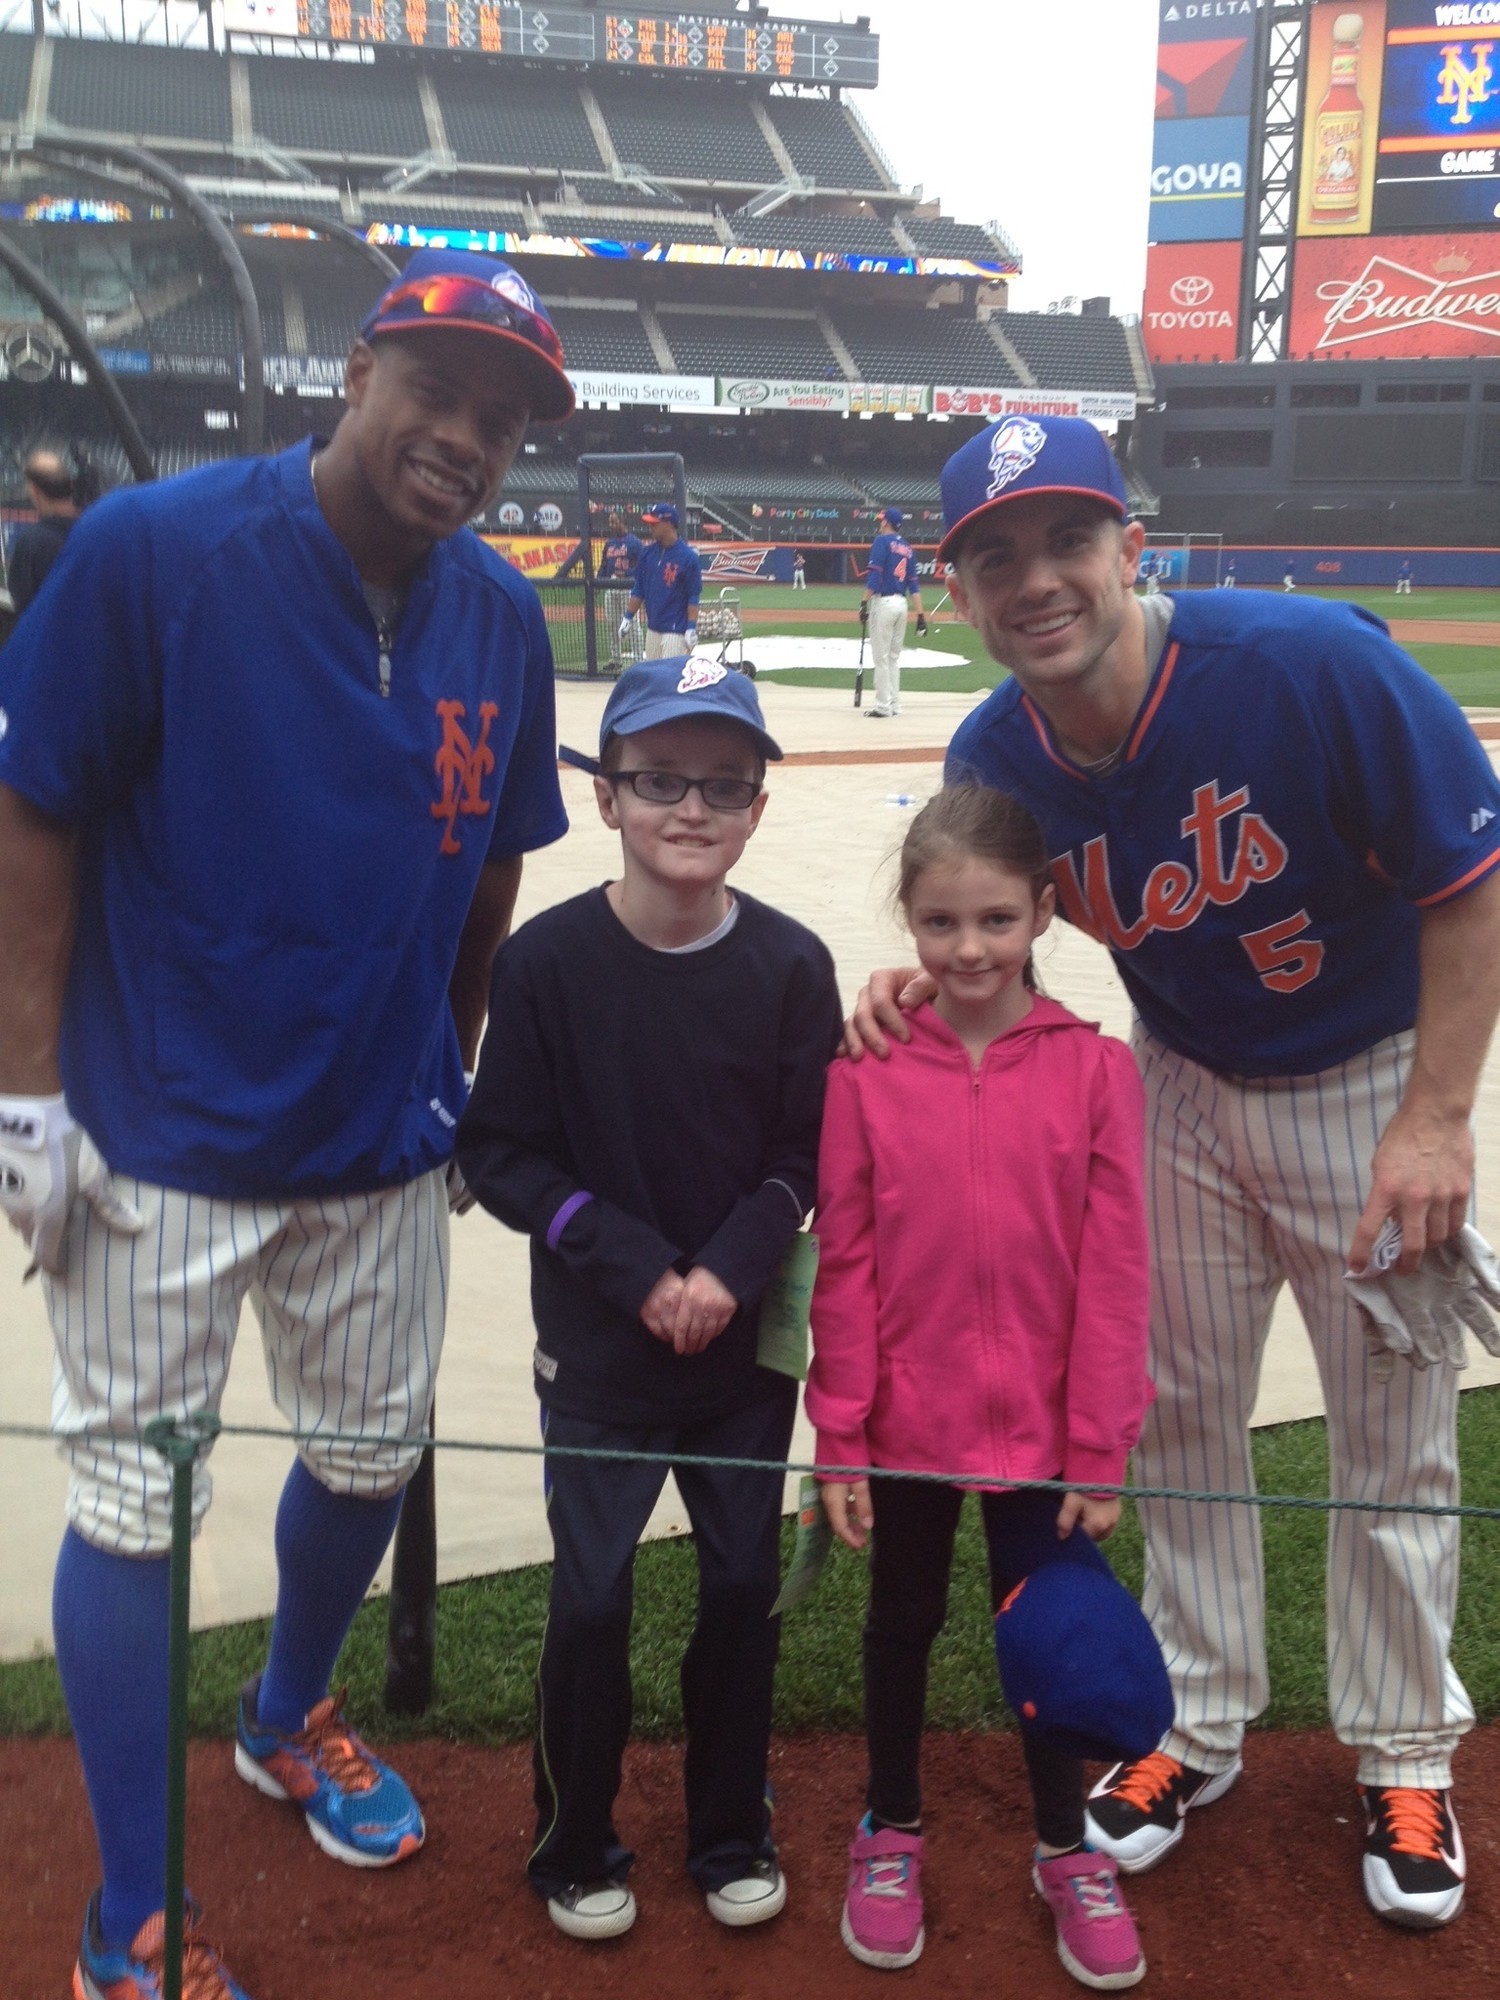 Robbie met New York Mets players David Wright and Curtis Granderson at Citi Field in May.